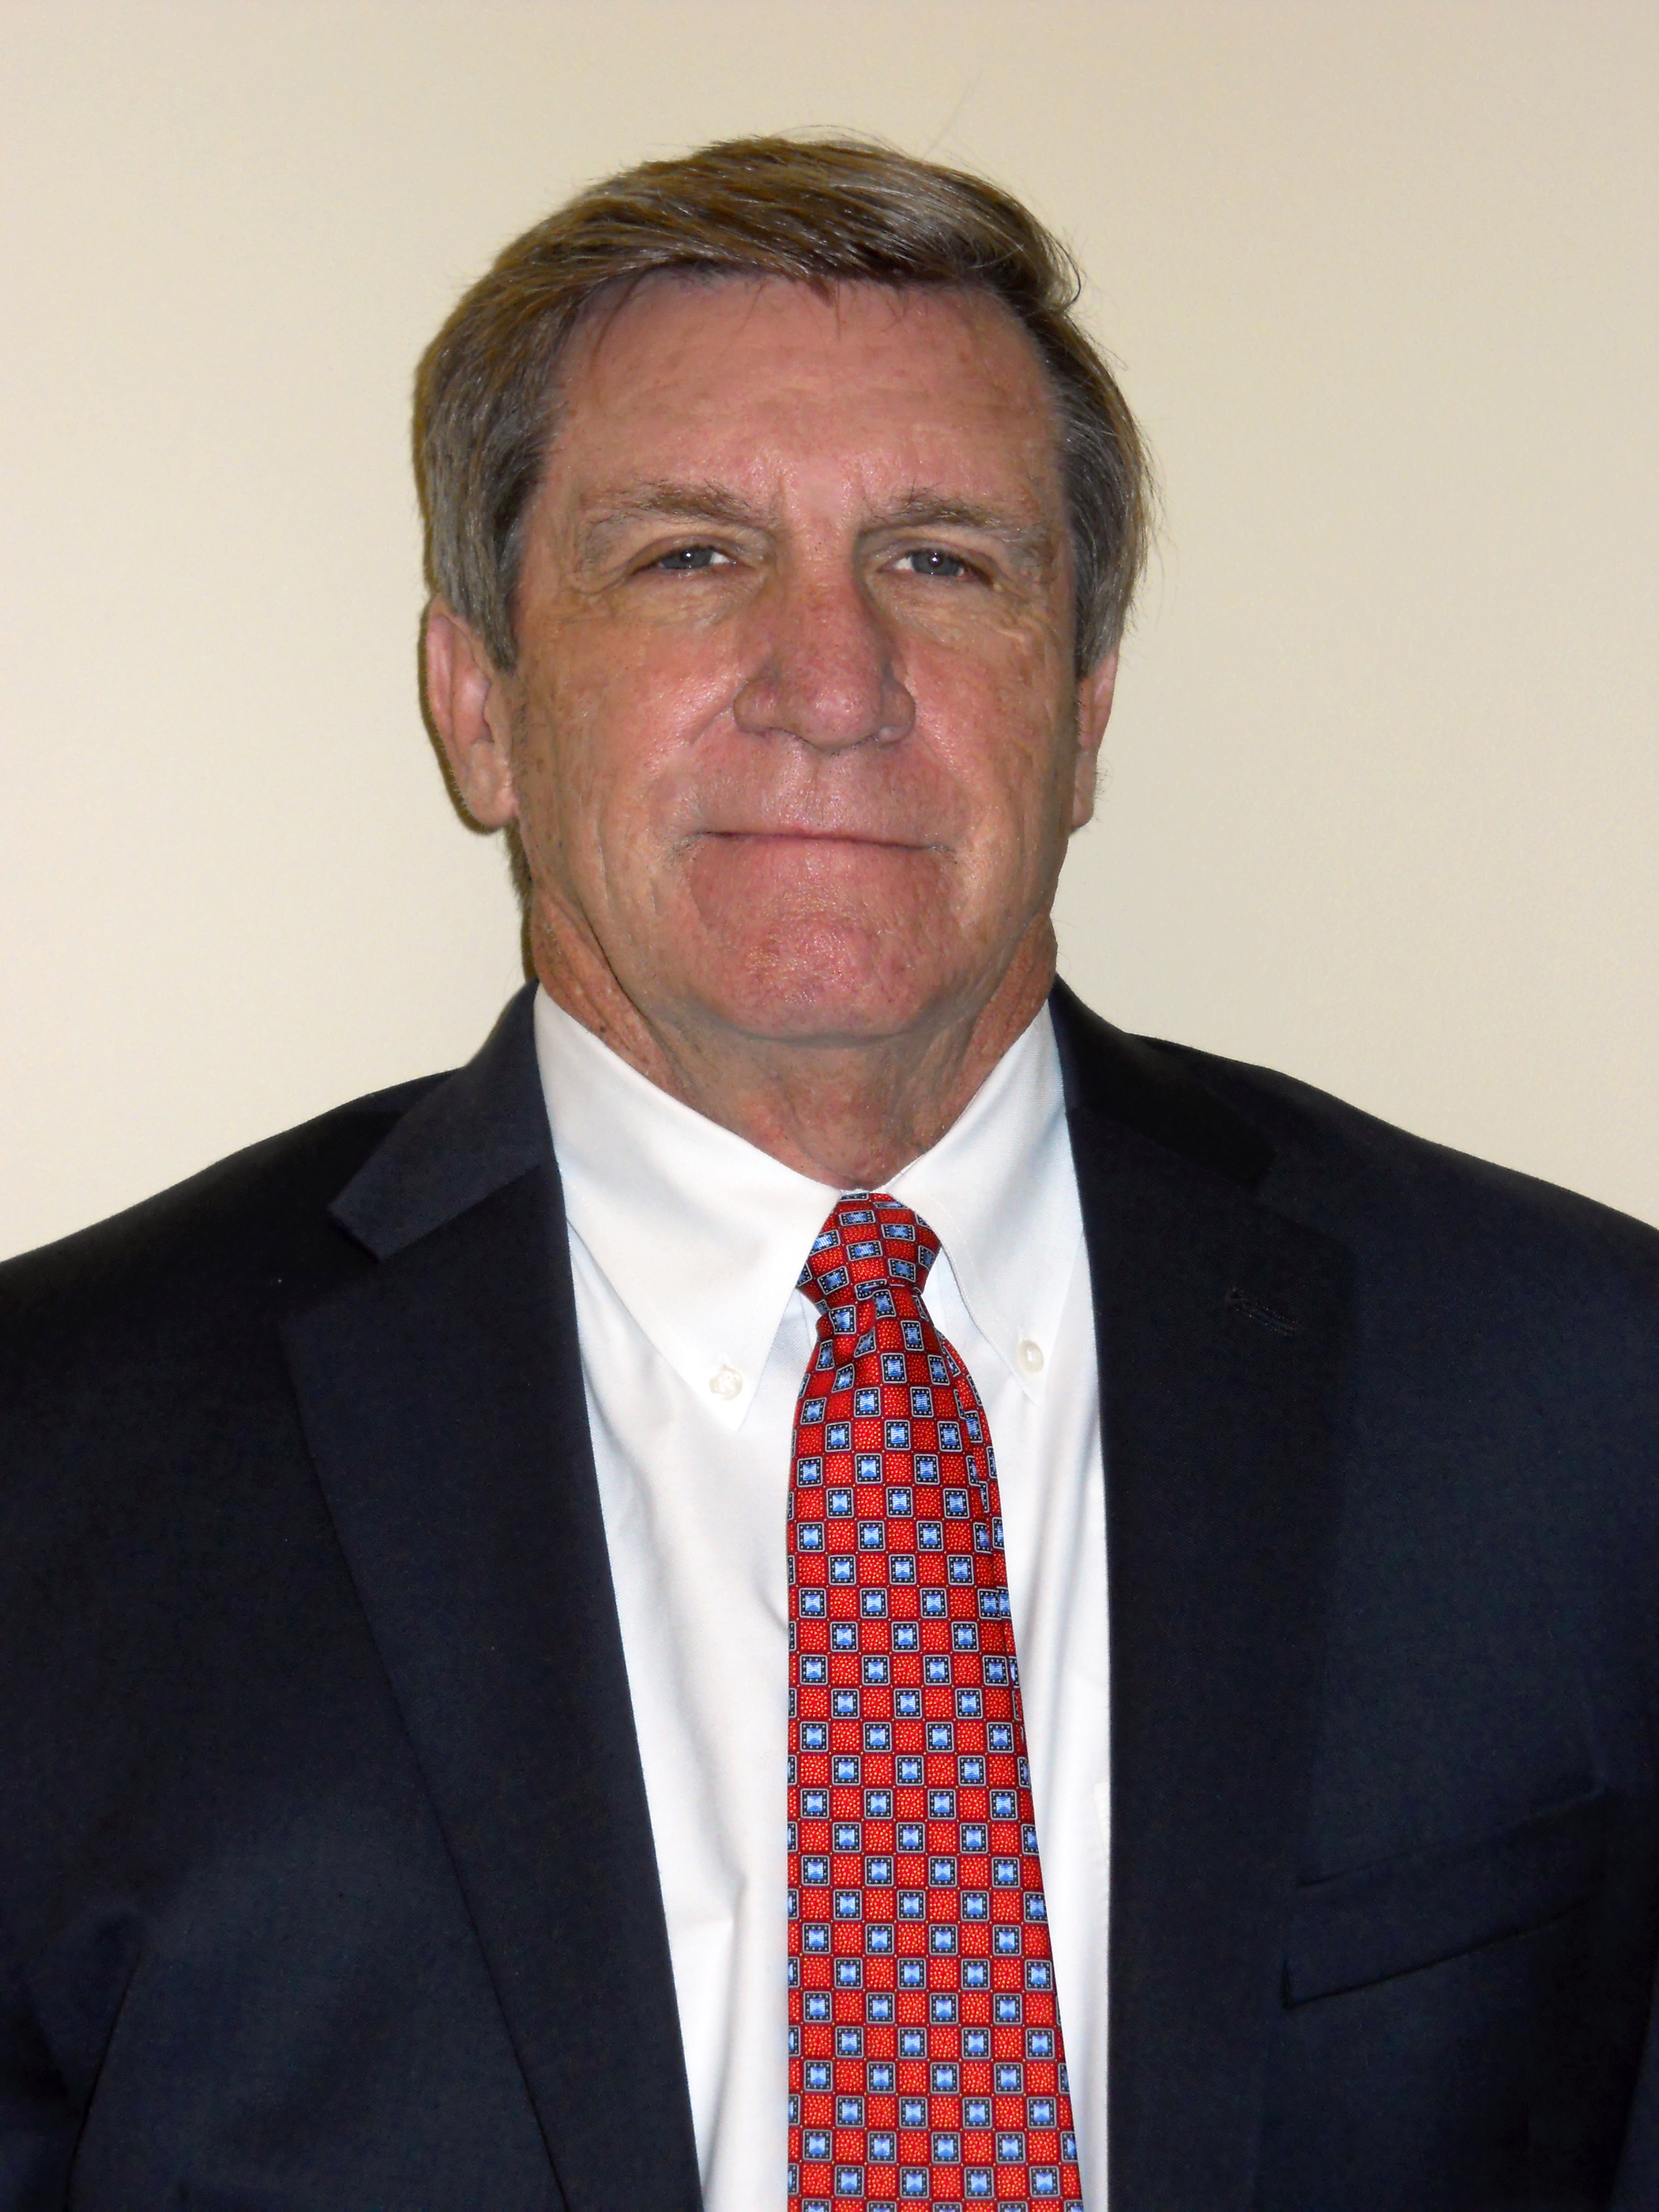 Jim Jeffers, PE - Director of Construction Services